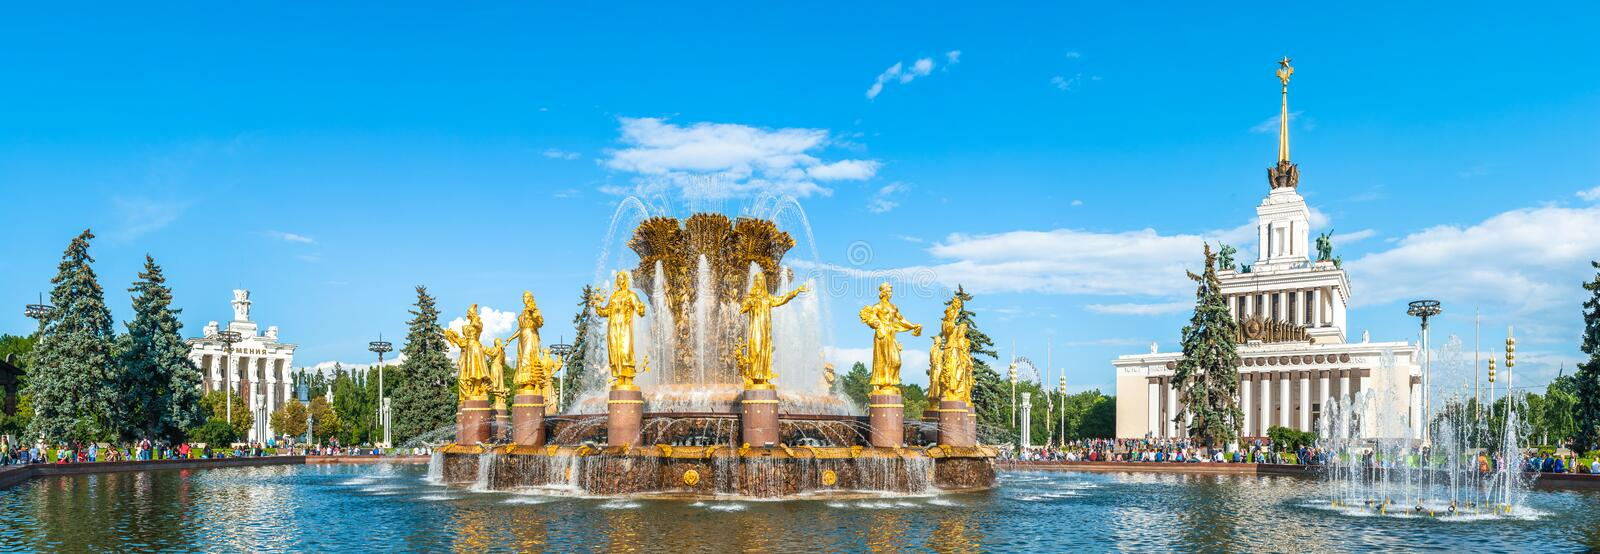 Fraternity of Peoples Fountain at VDNKh. The Fraternity of Peoples Fountain located at the All-Russia Exhibition Centre (VDNKh) in downtown Moscow, Russia. The stock images